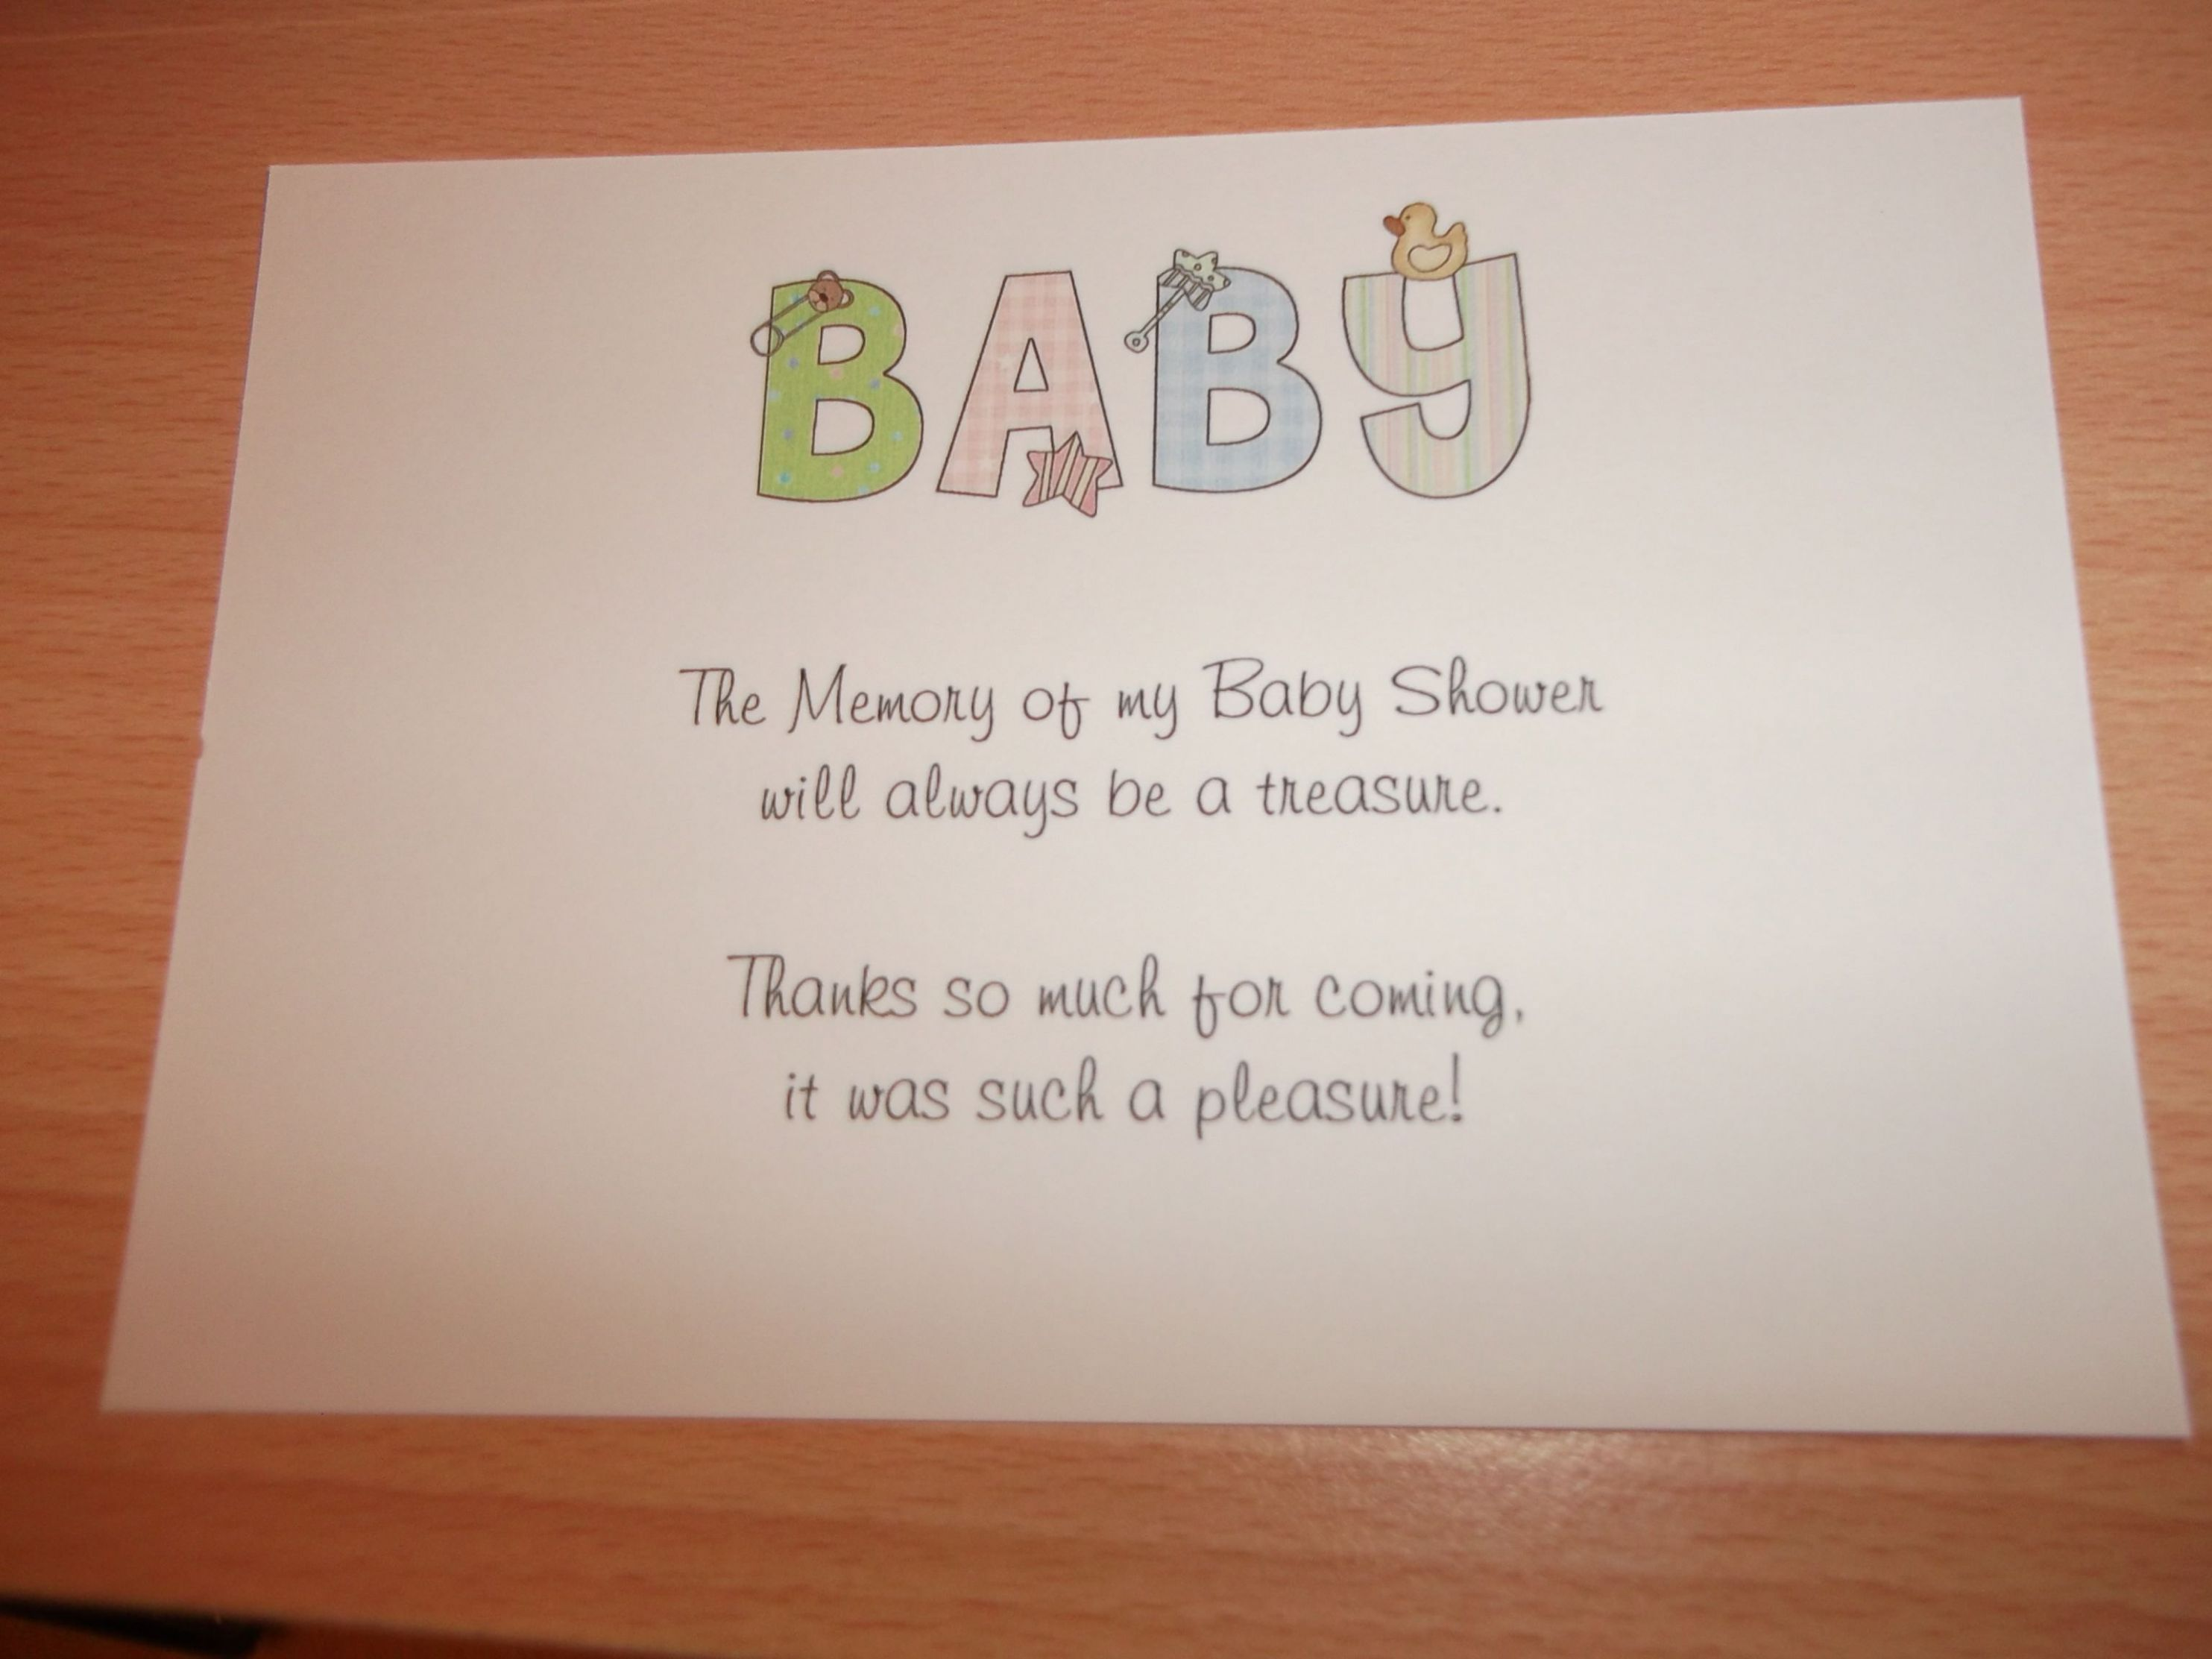 Baby Gift Register Uk : Baby shower thank you gifts bing images things